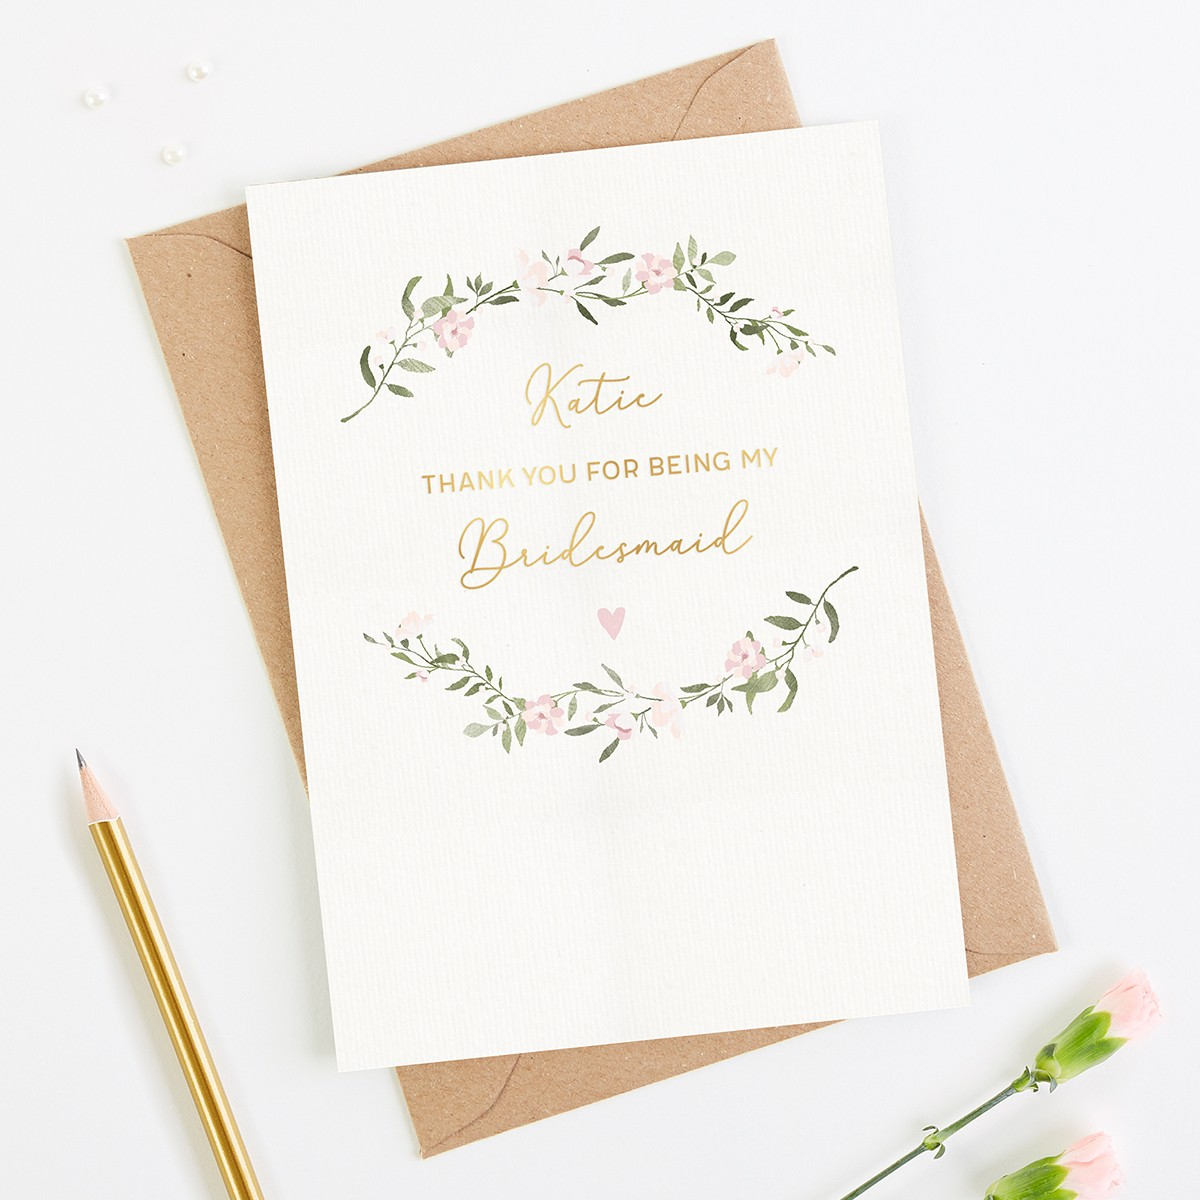 90065cce31 Thank You Bridesmaid Personalised Foil Card | norma&dorothy